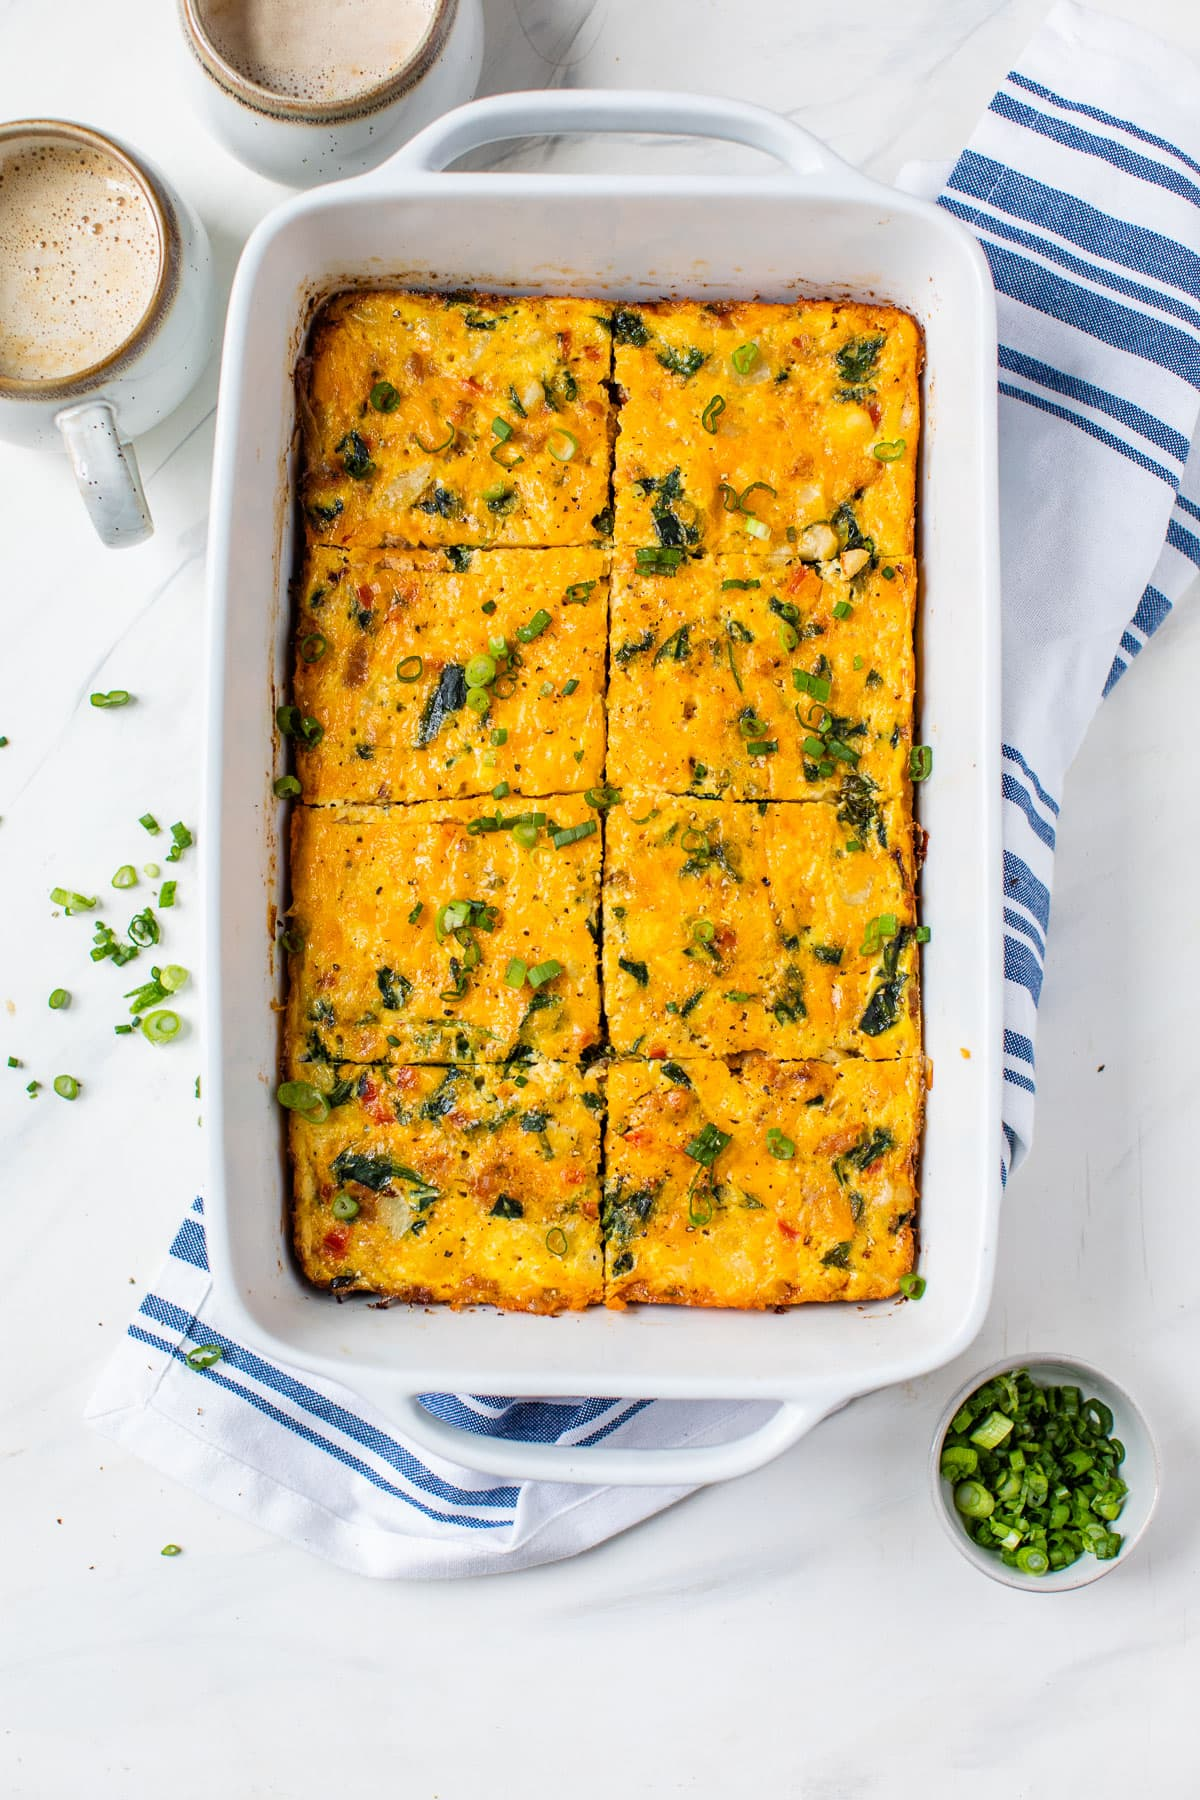 Easy healthy breakfast casserole in a baking dish